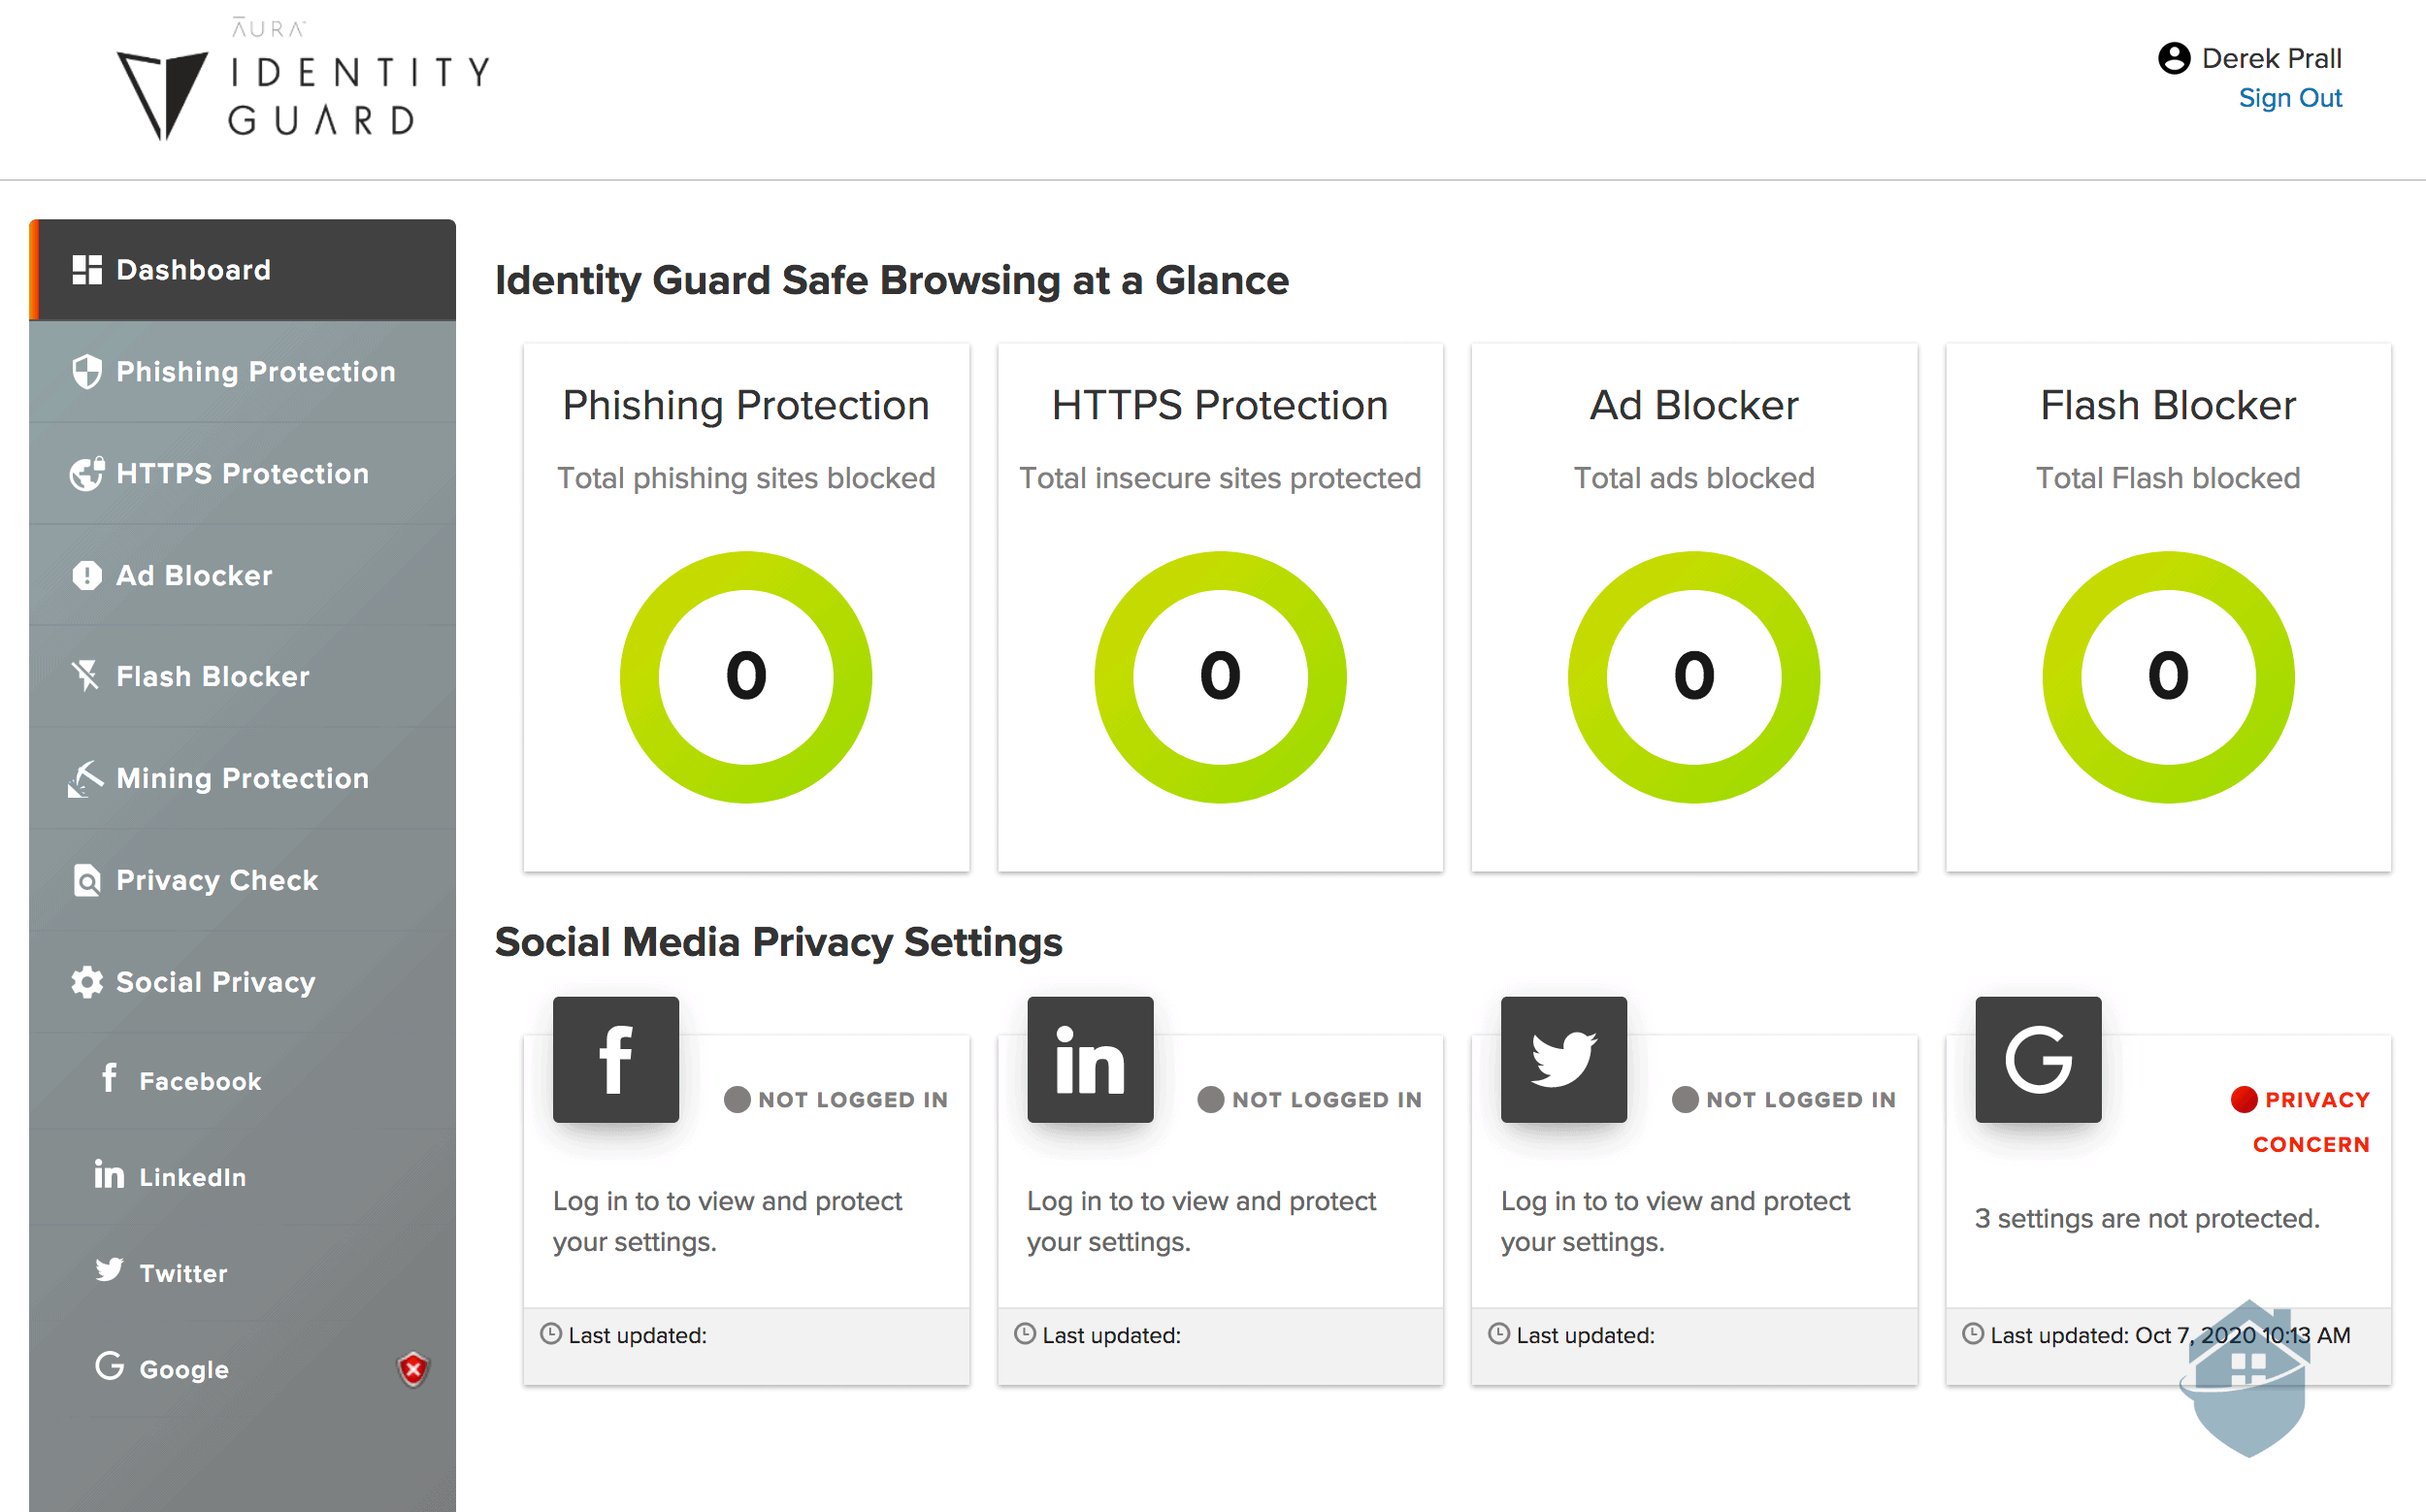 Identity Guard Safe Browsing Report